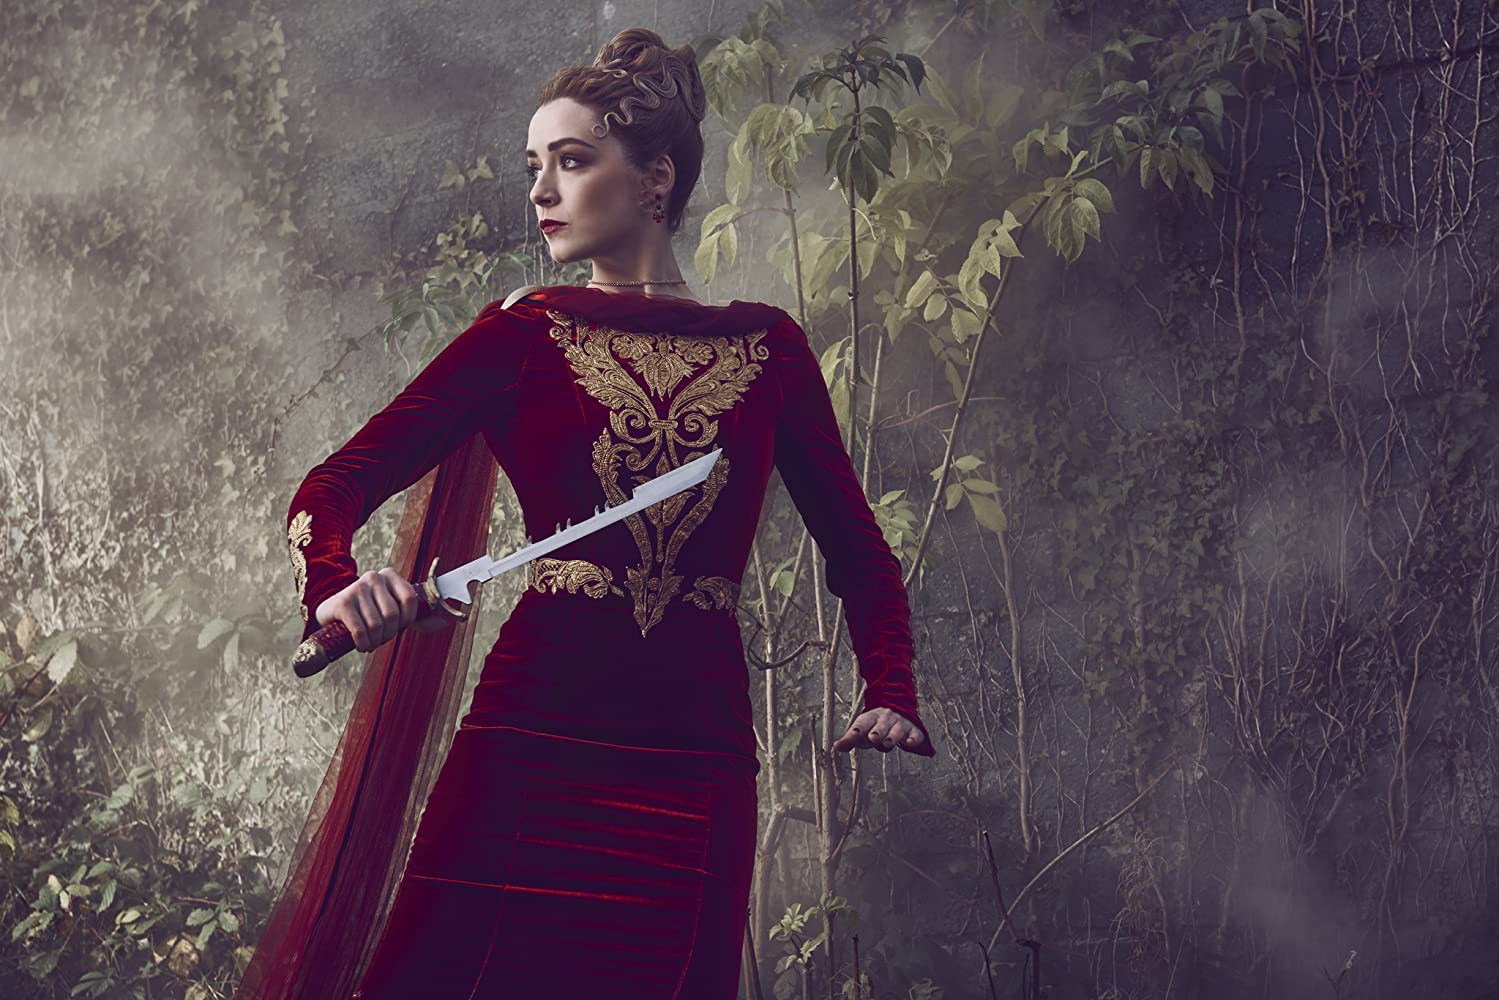 Sarah Bolger in Into the Badlands (2015)